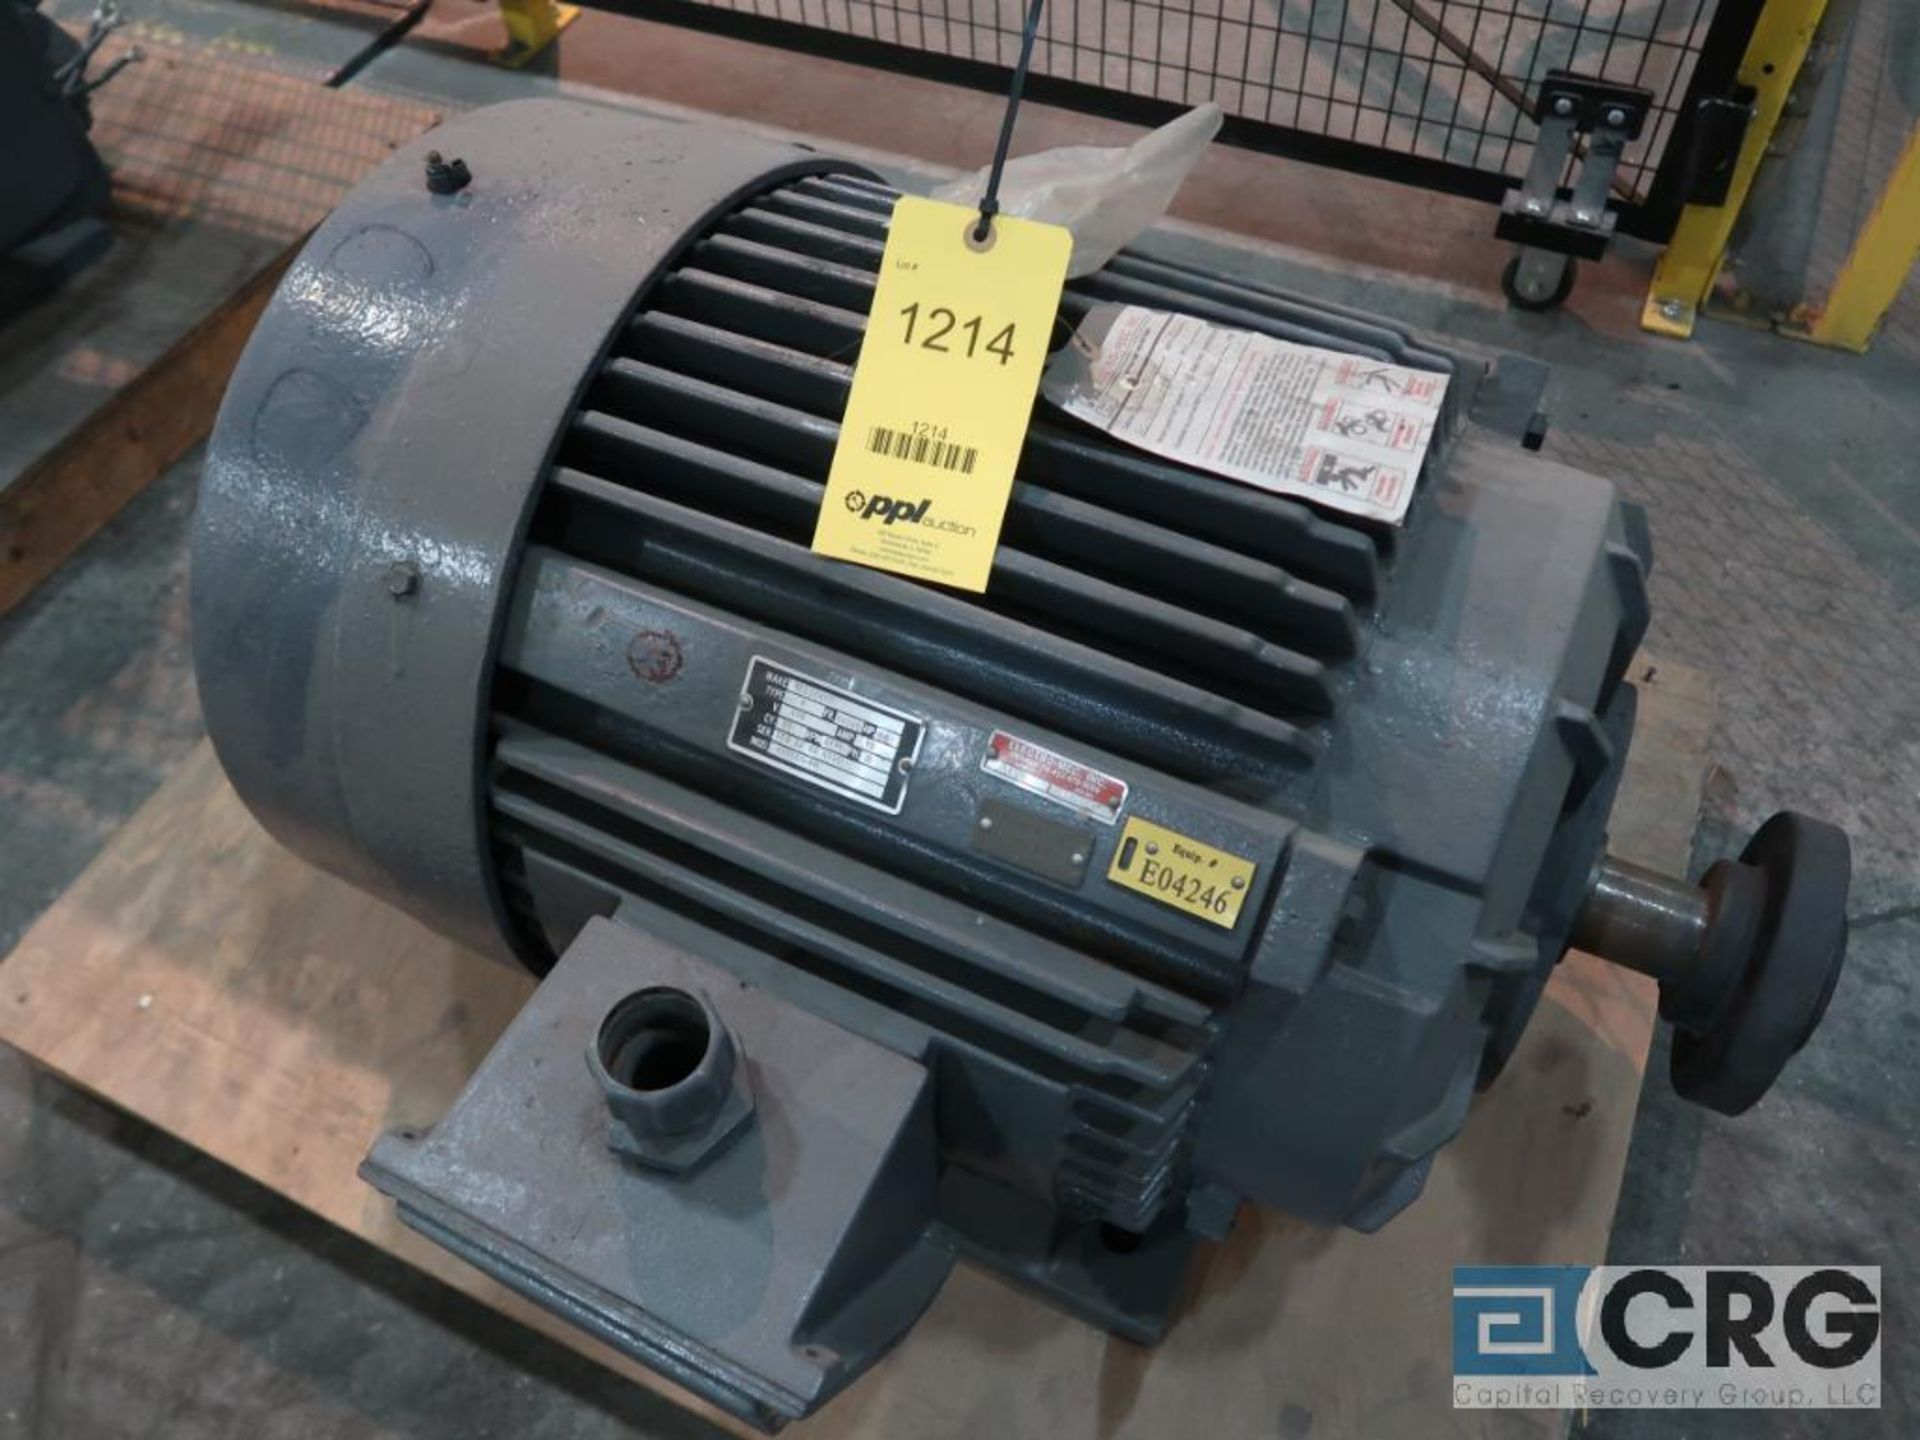 Reliance electric motor, 60 HP, 1,770 RPMs, 440 volt, 3 ph., 405US frame (Finish Building)